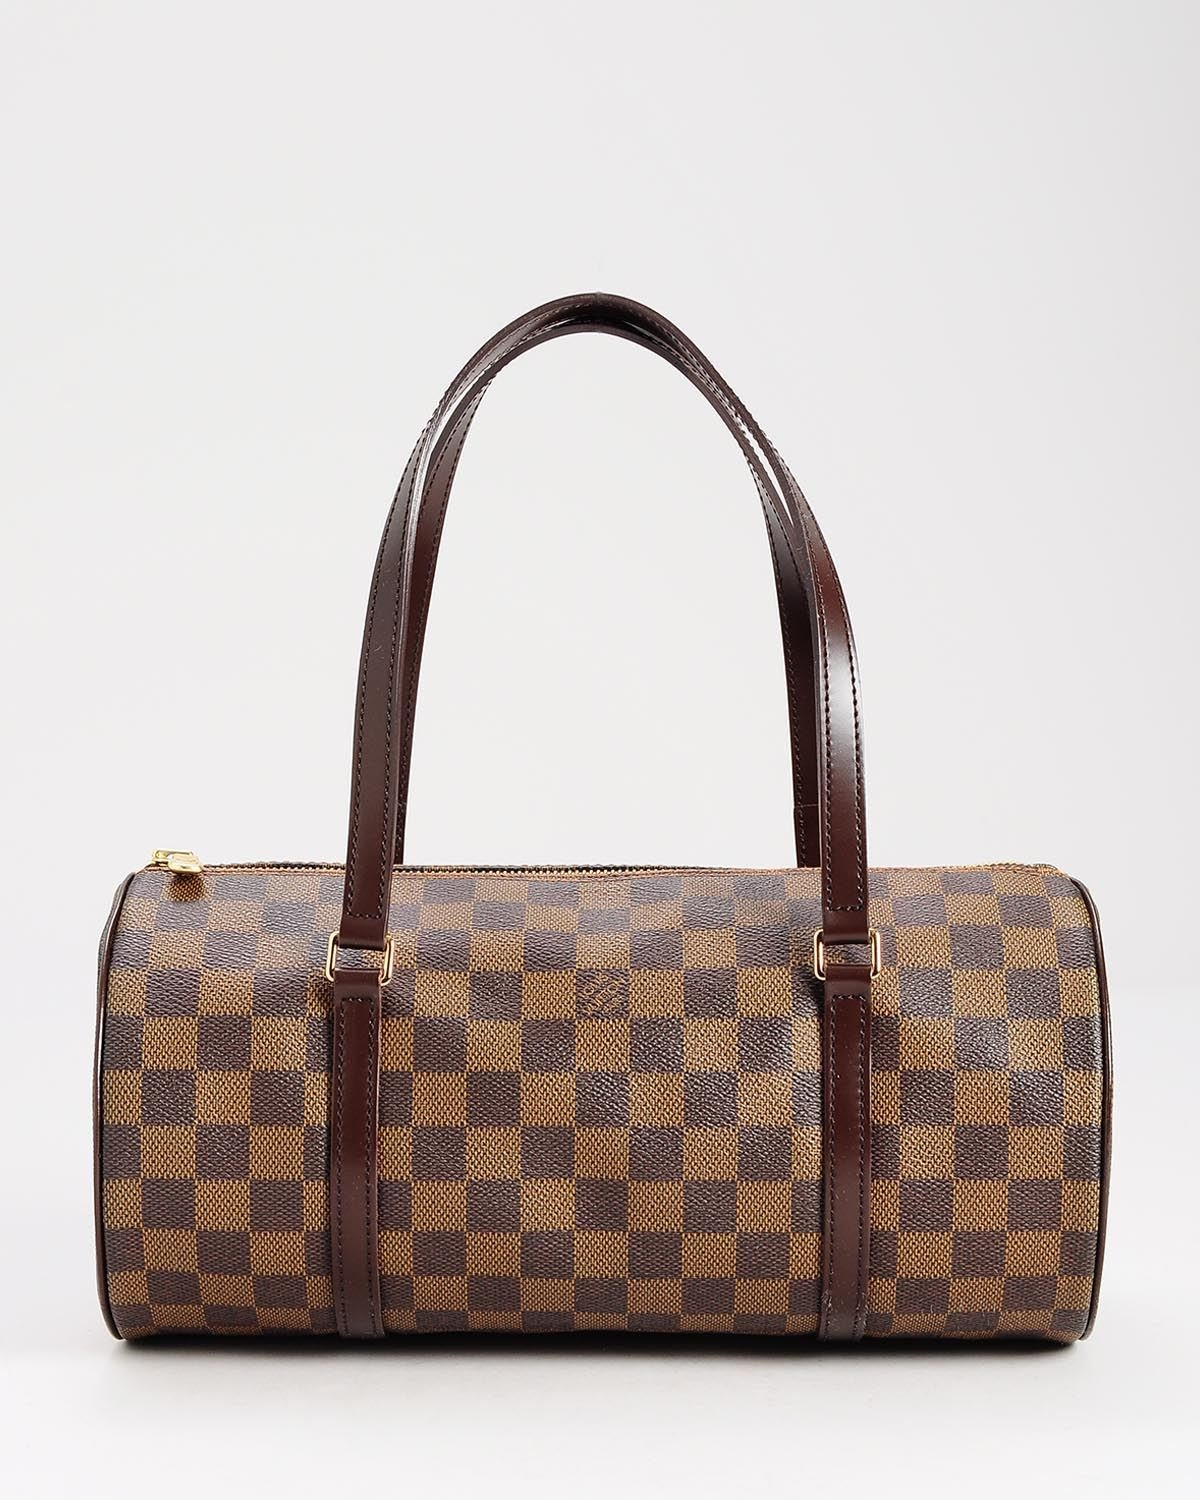 Louis Vuitton LU Damier Barrel Handbag $649